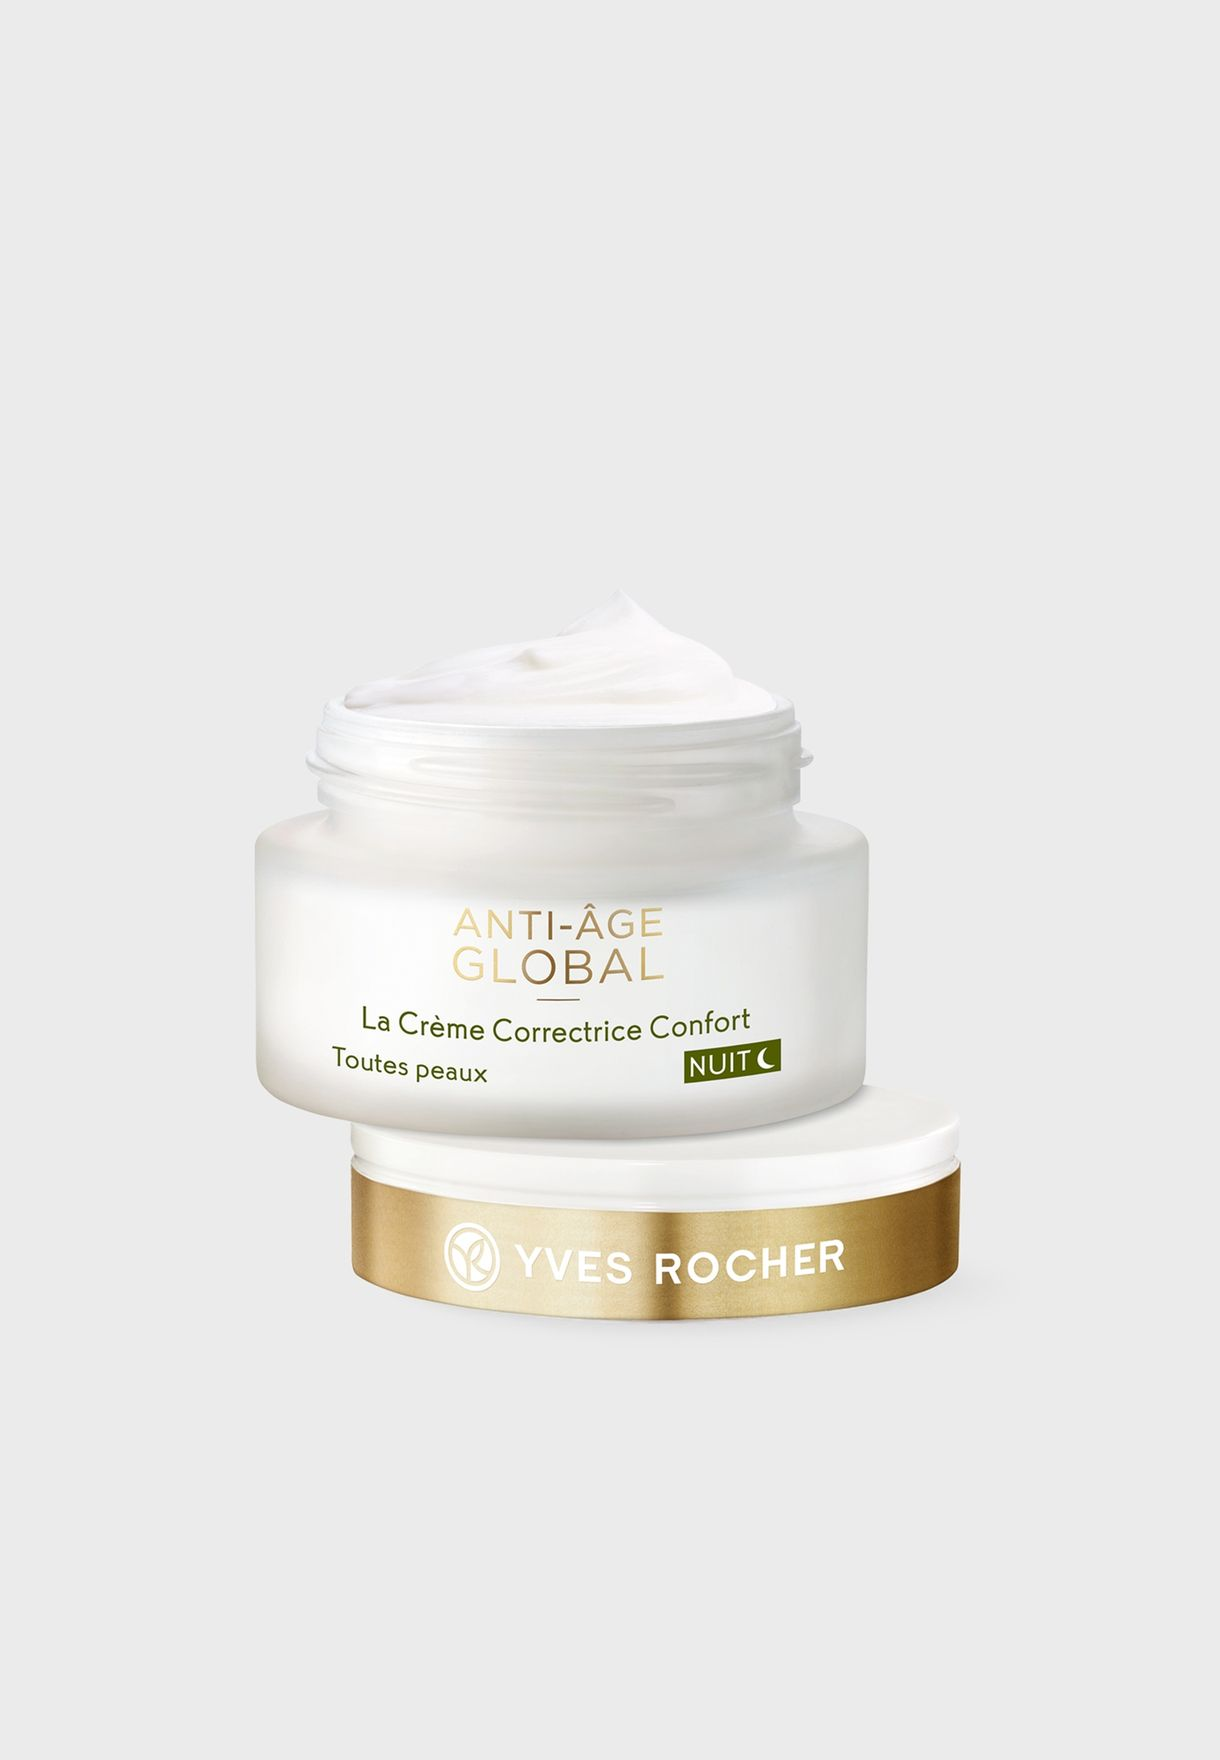 Night Comfort Corrective Cream 50ml